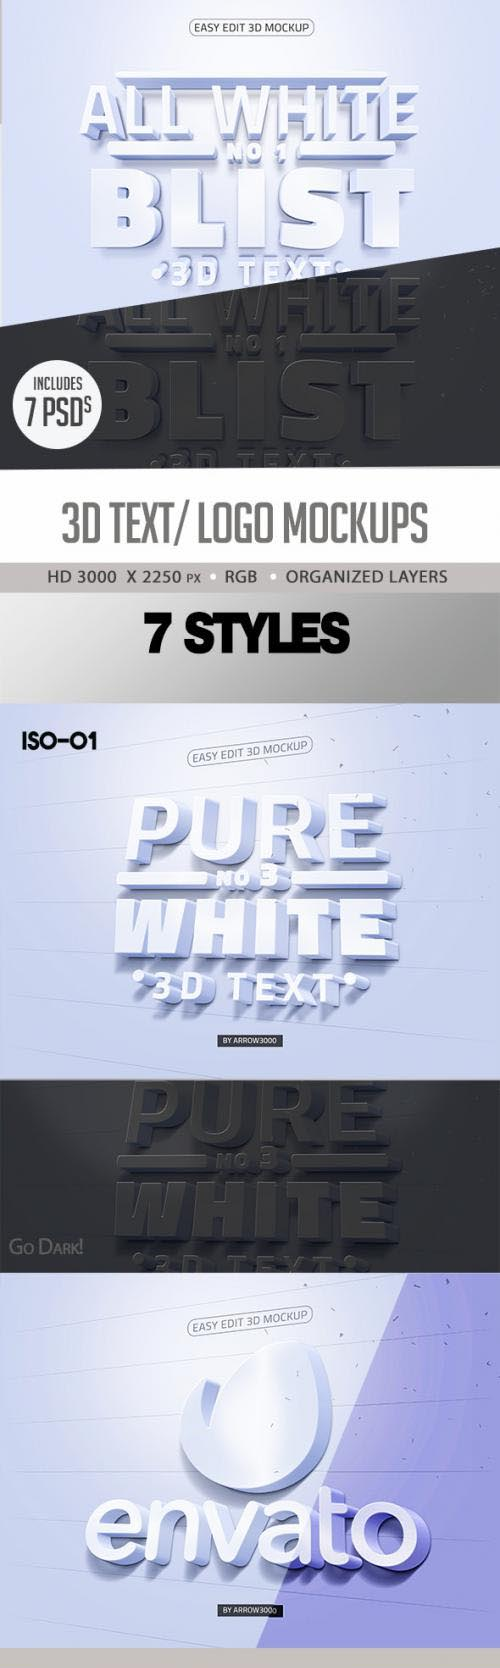 Pure White 3D Text Logo Mock up - 23888803